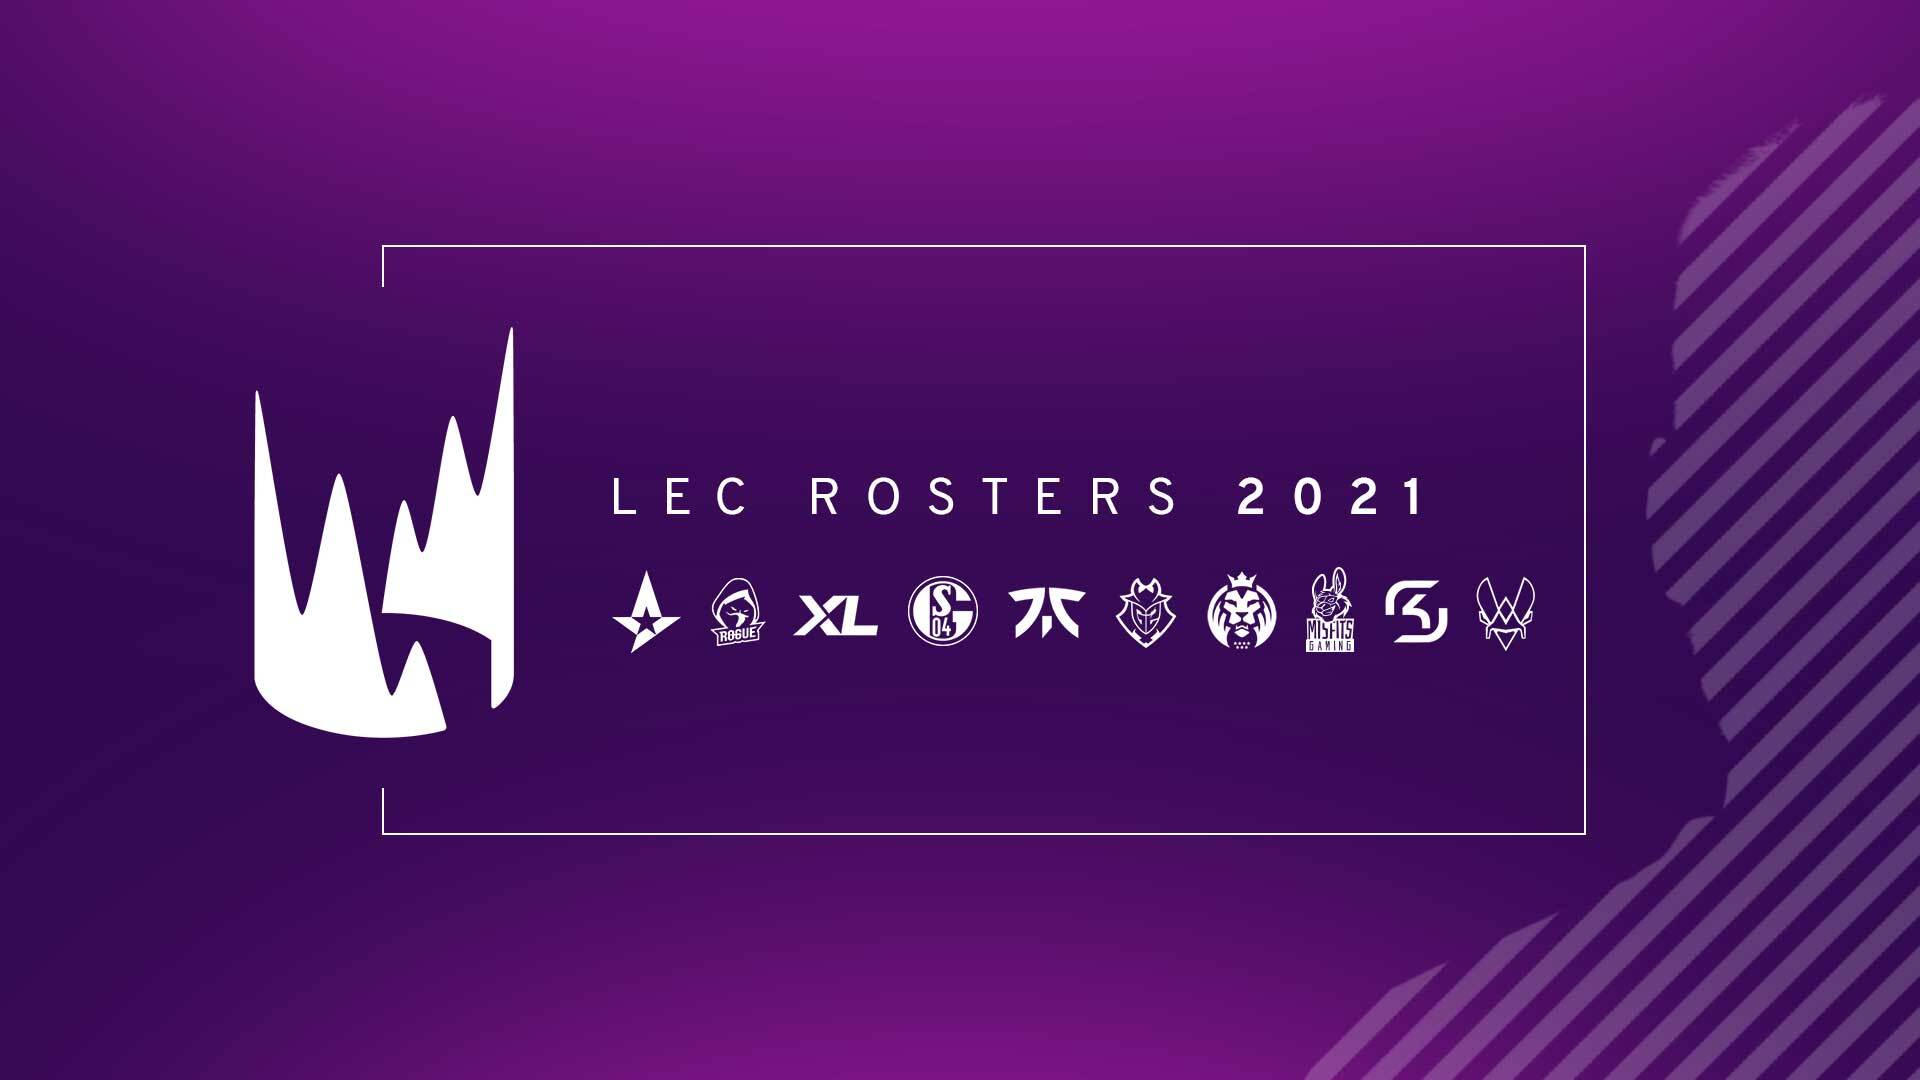 Official LEC Rosters 2021